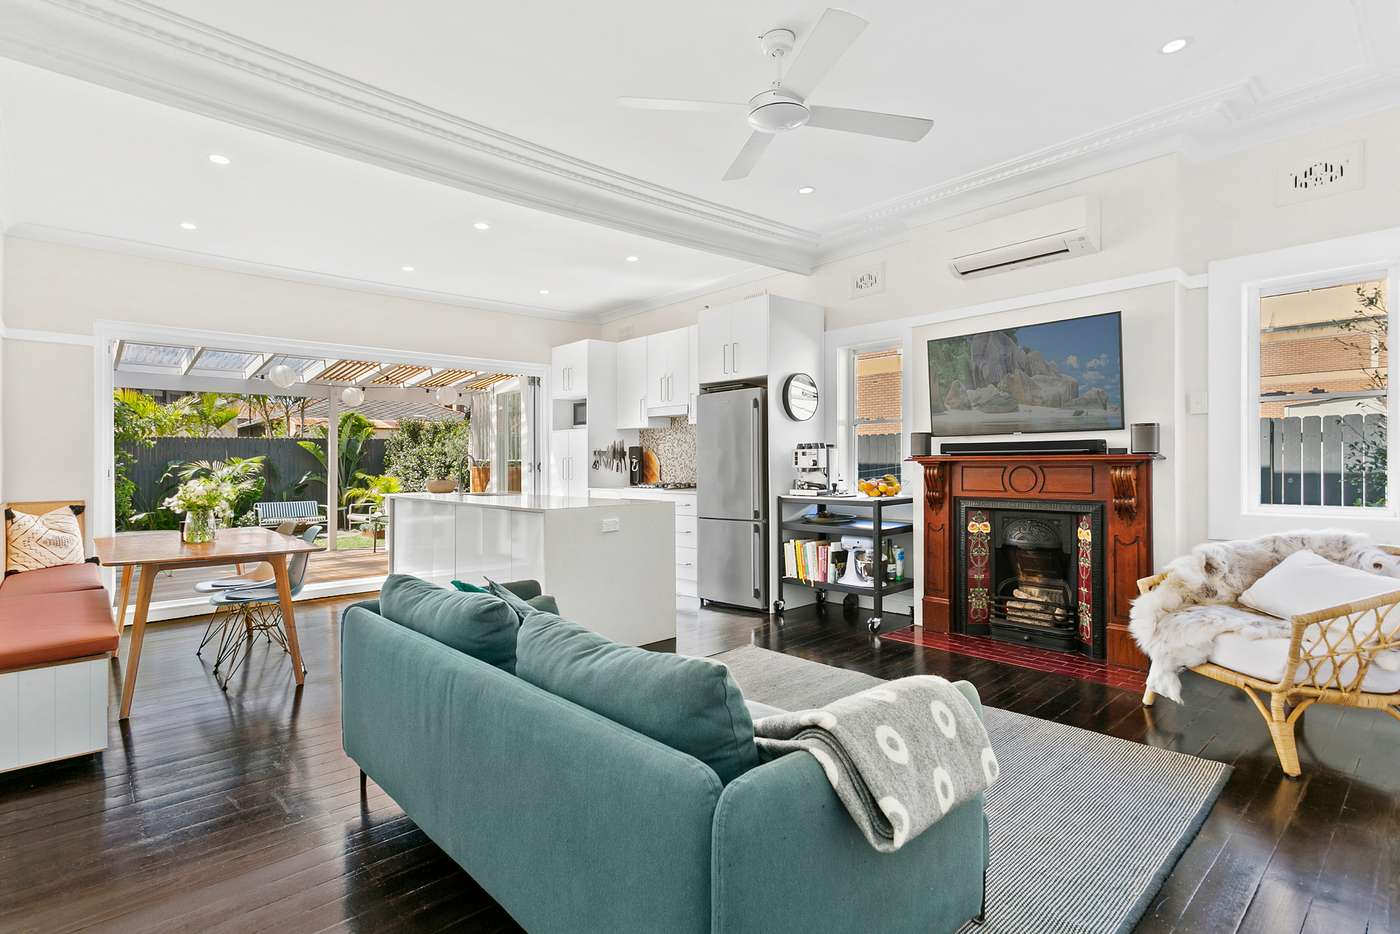 Fifth view of Homely house listing, 100 Gale Road, Maroubra NSW 2035